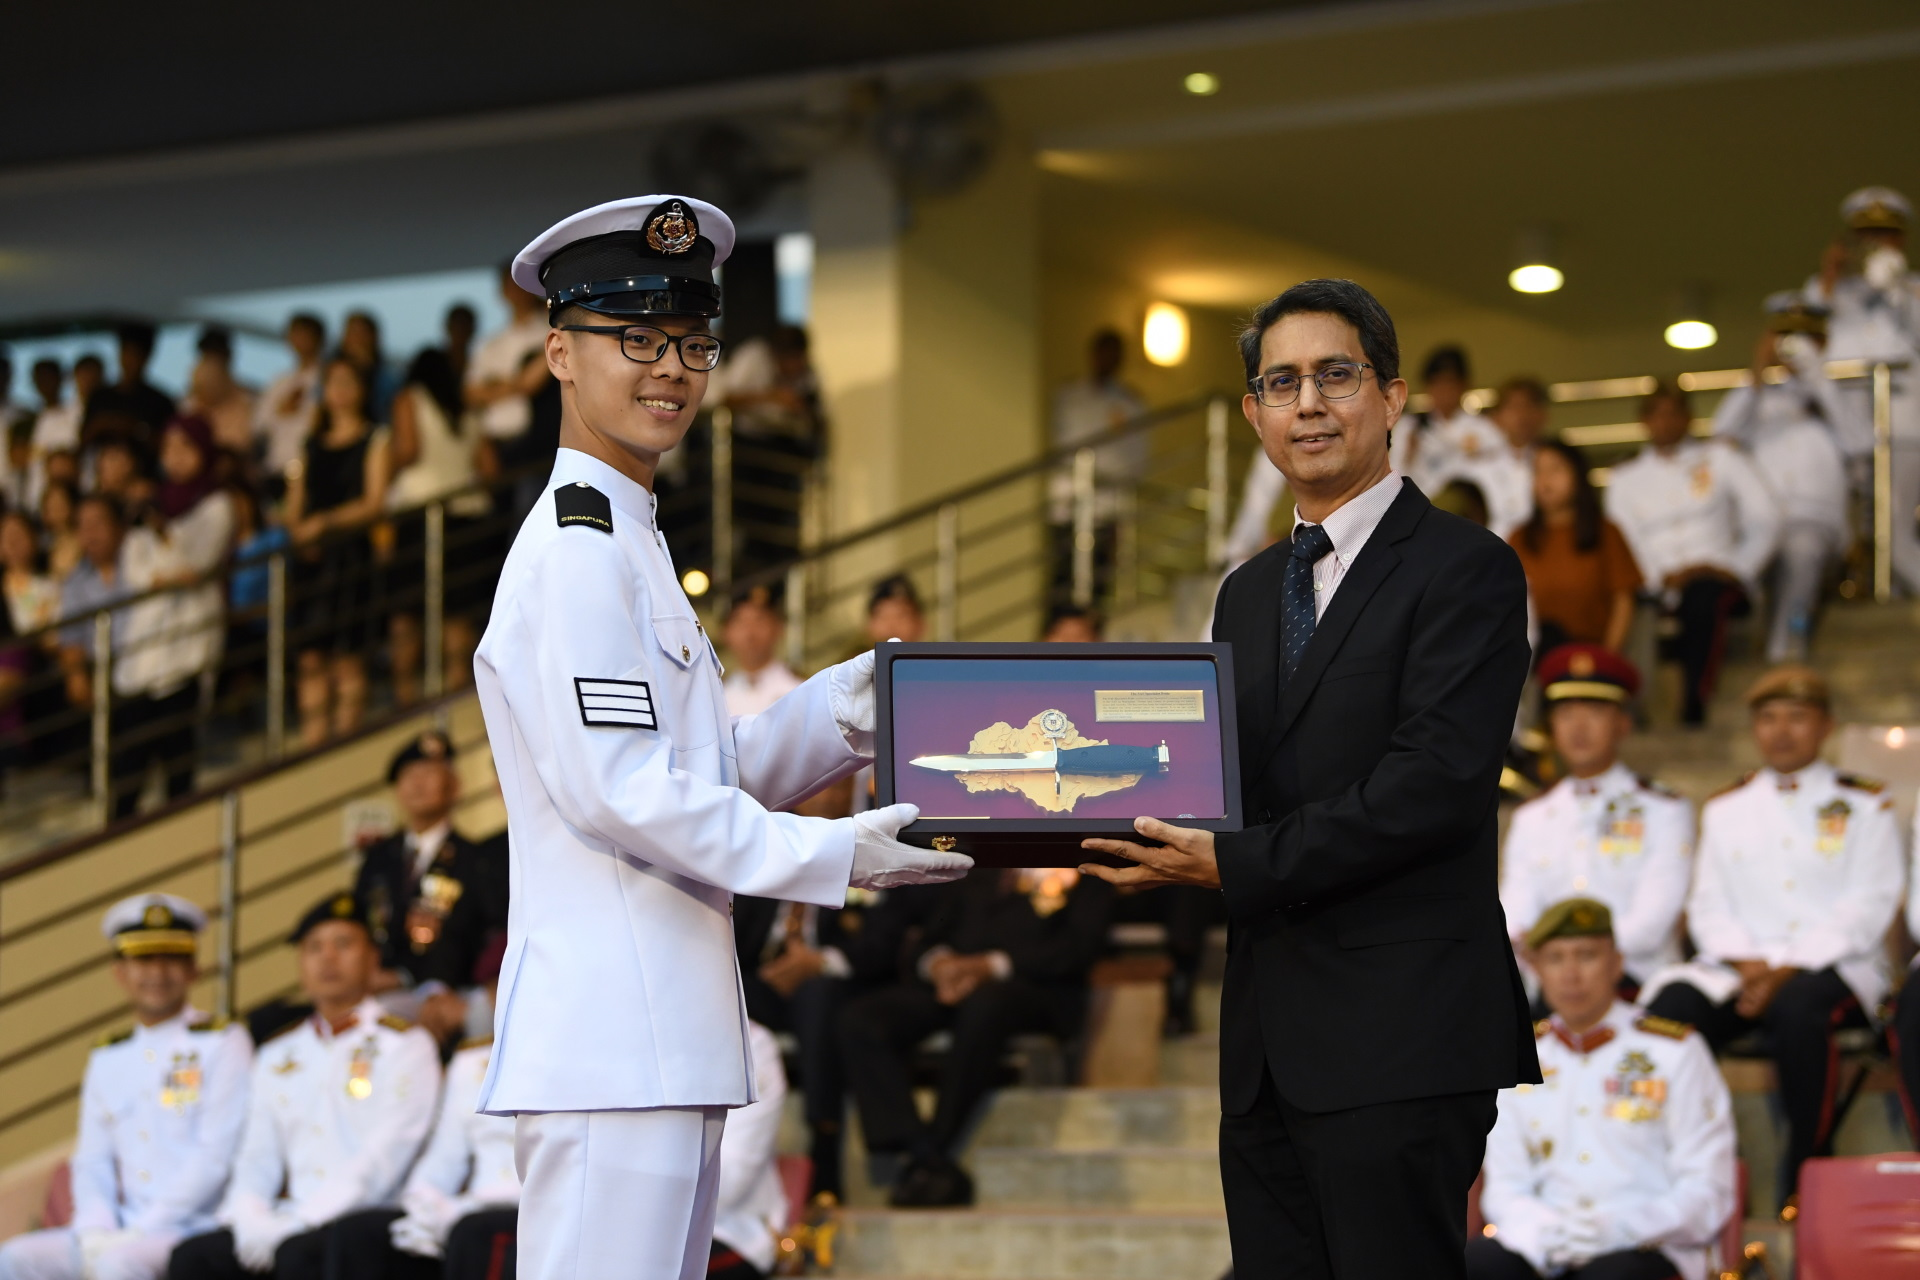 A/P Faishal presenting the Golden Bayonet to Specialist Cadet (SCT) Lee Jing Yuan from the Republic of Singapore Navy.